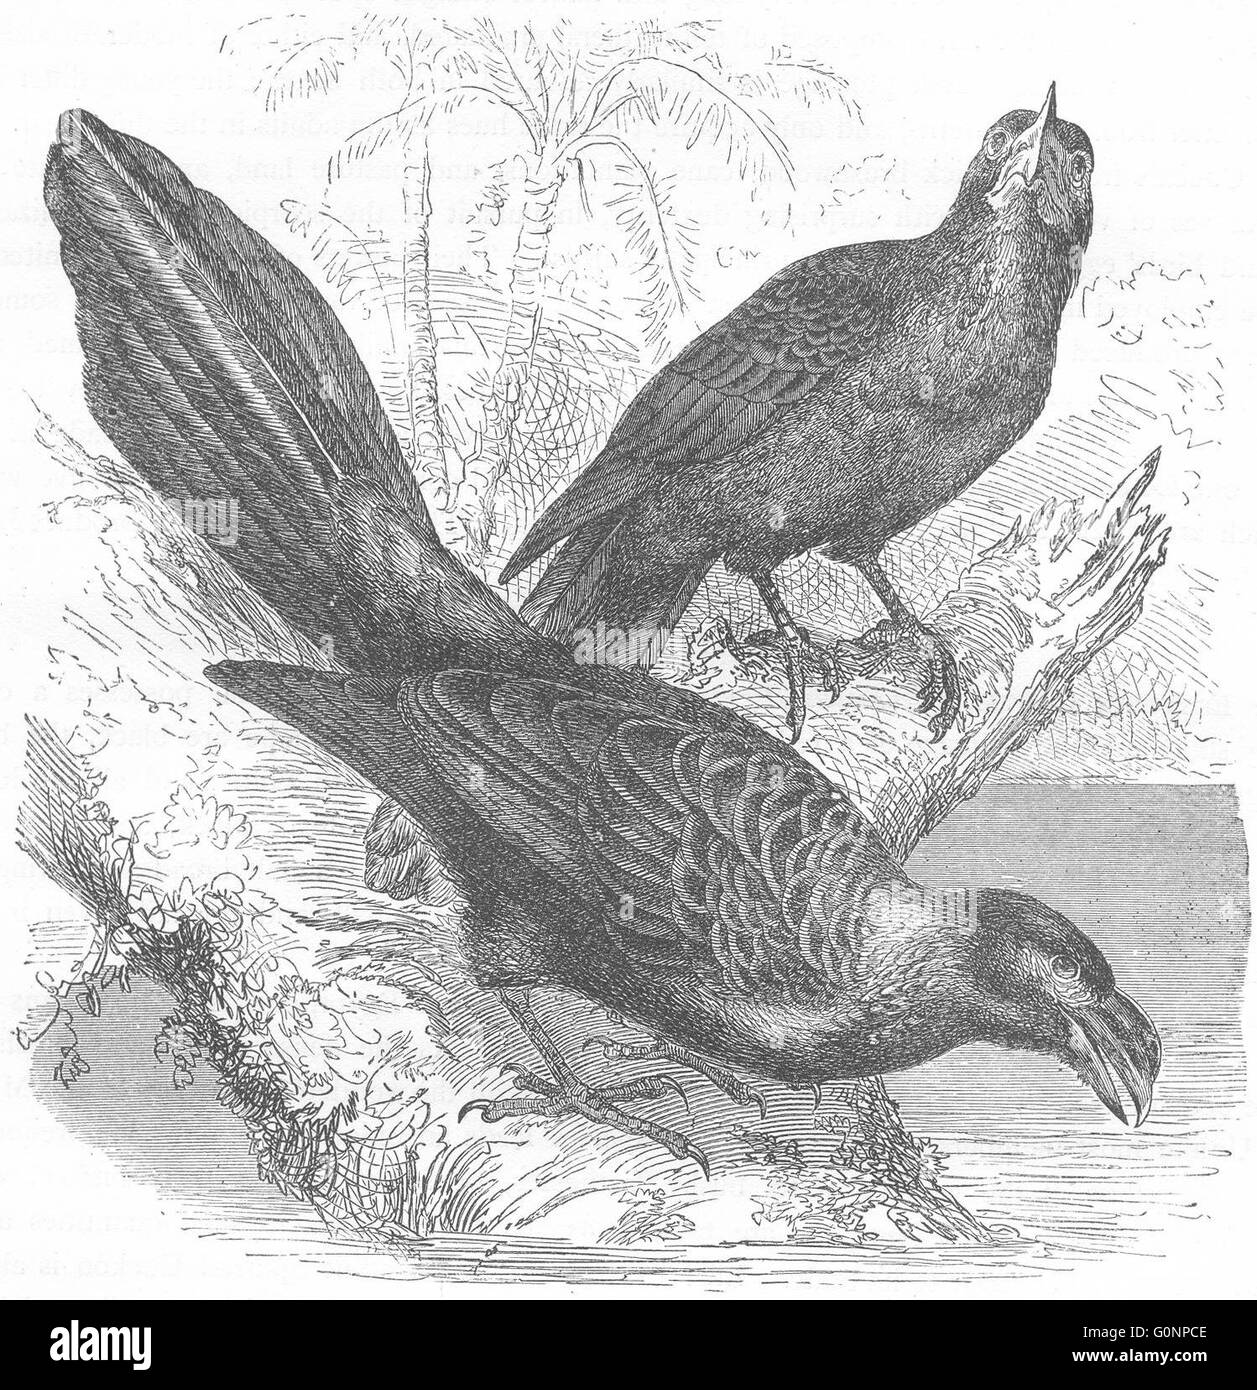 BIRDS: Searcher: Cuckoo: Wrinkled-beaked Tick-eater, antique print c1870 - Stock Image